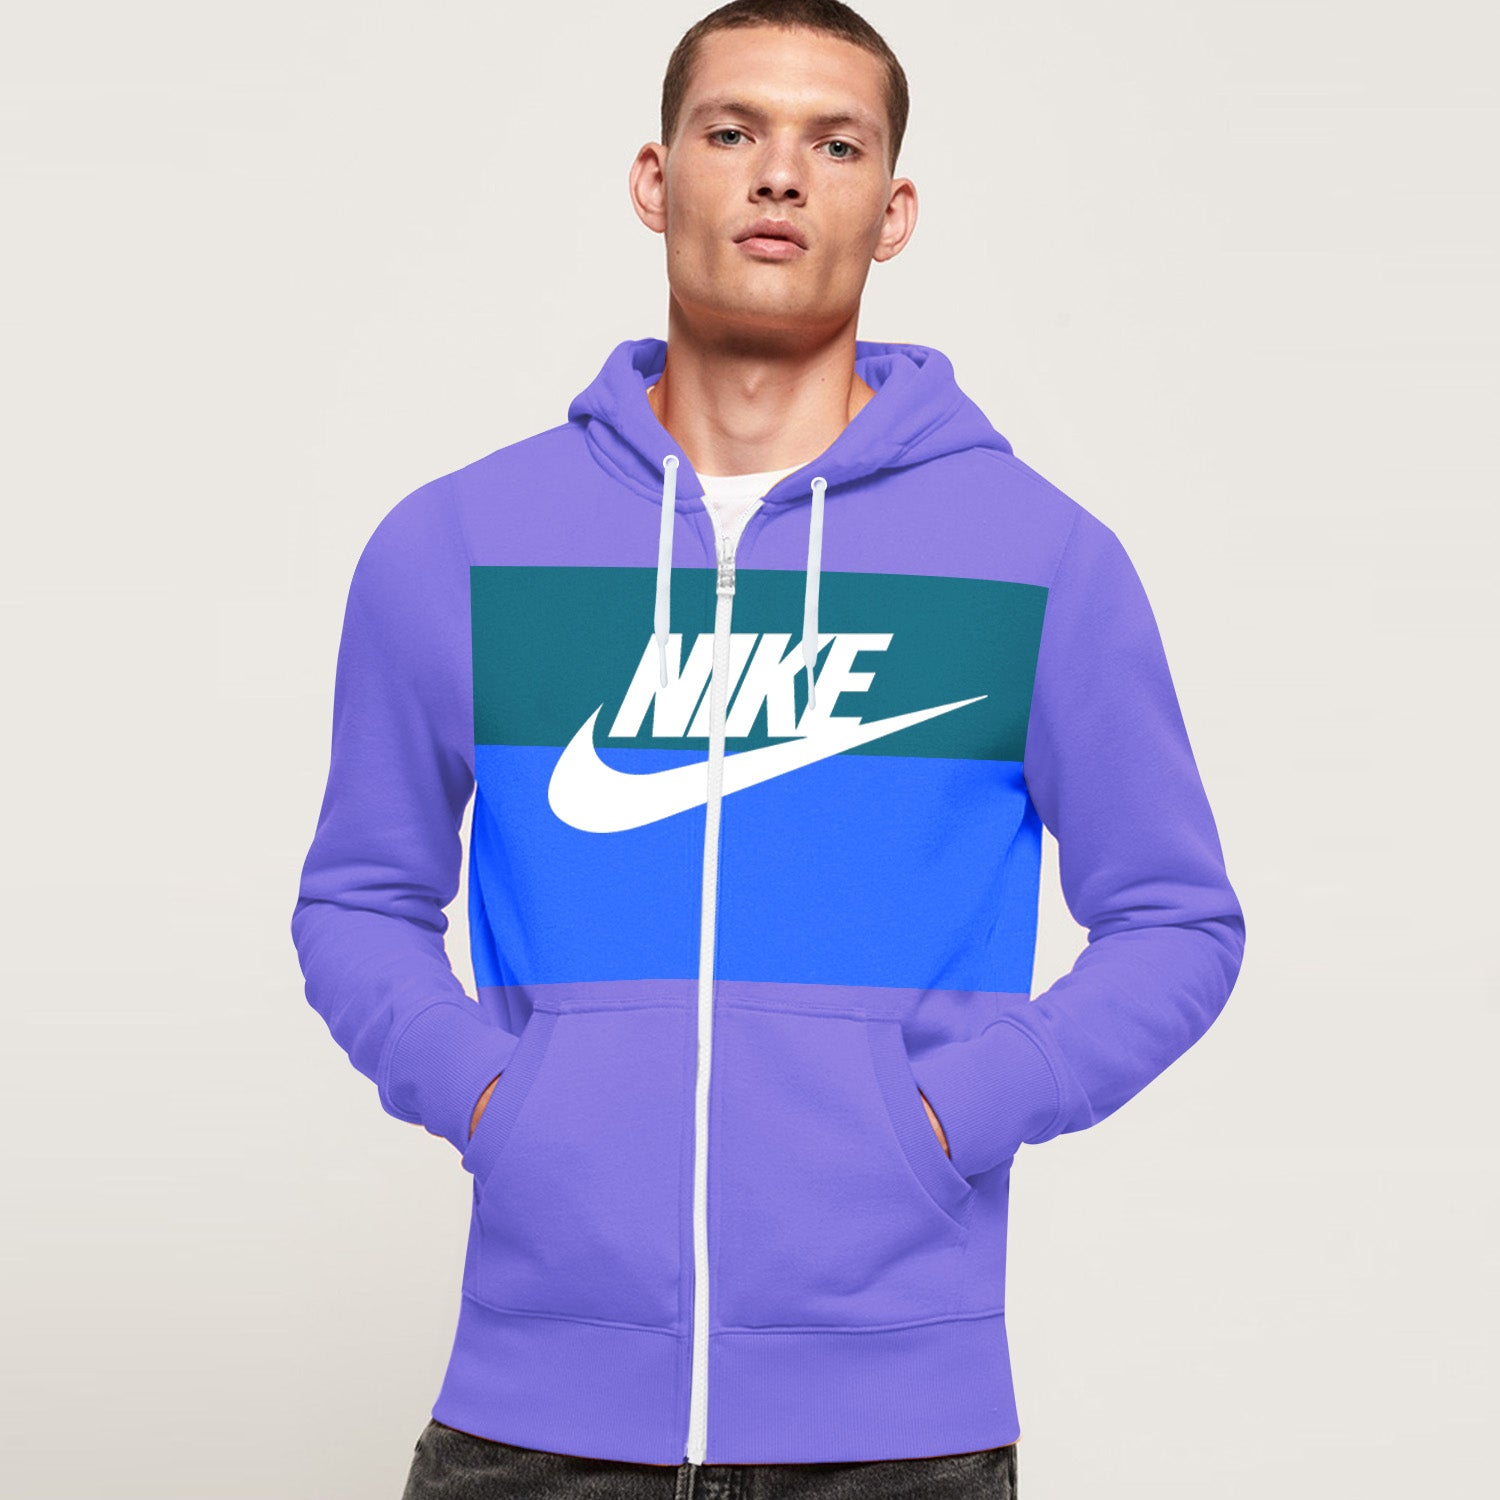 NK Slim Fit Stretchable Zipper Hoodie For Men-Light Purple with Dark Zinc & Cyan Panel-BE11018